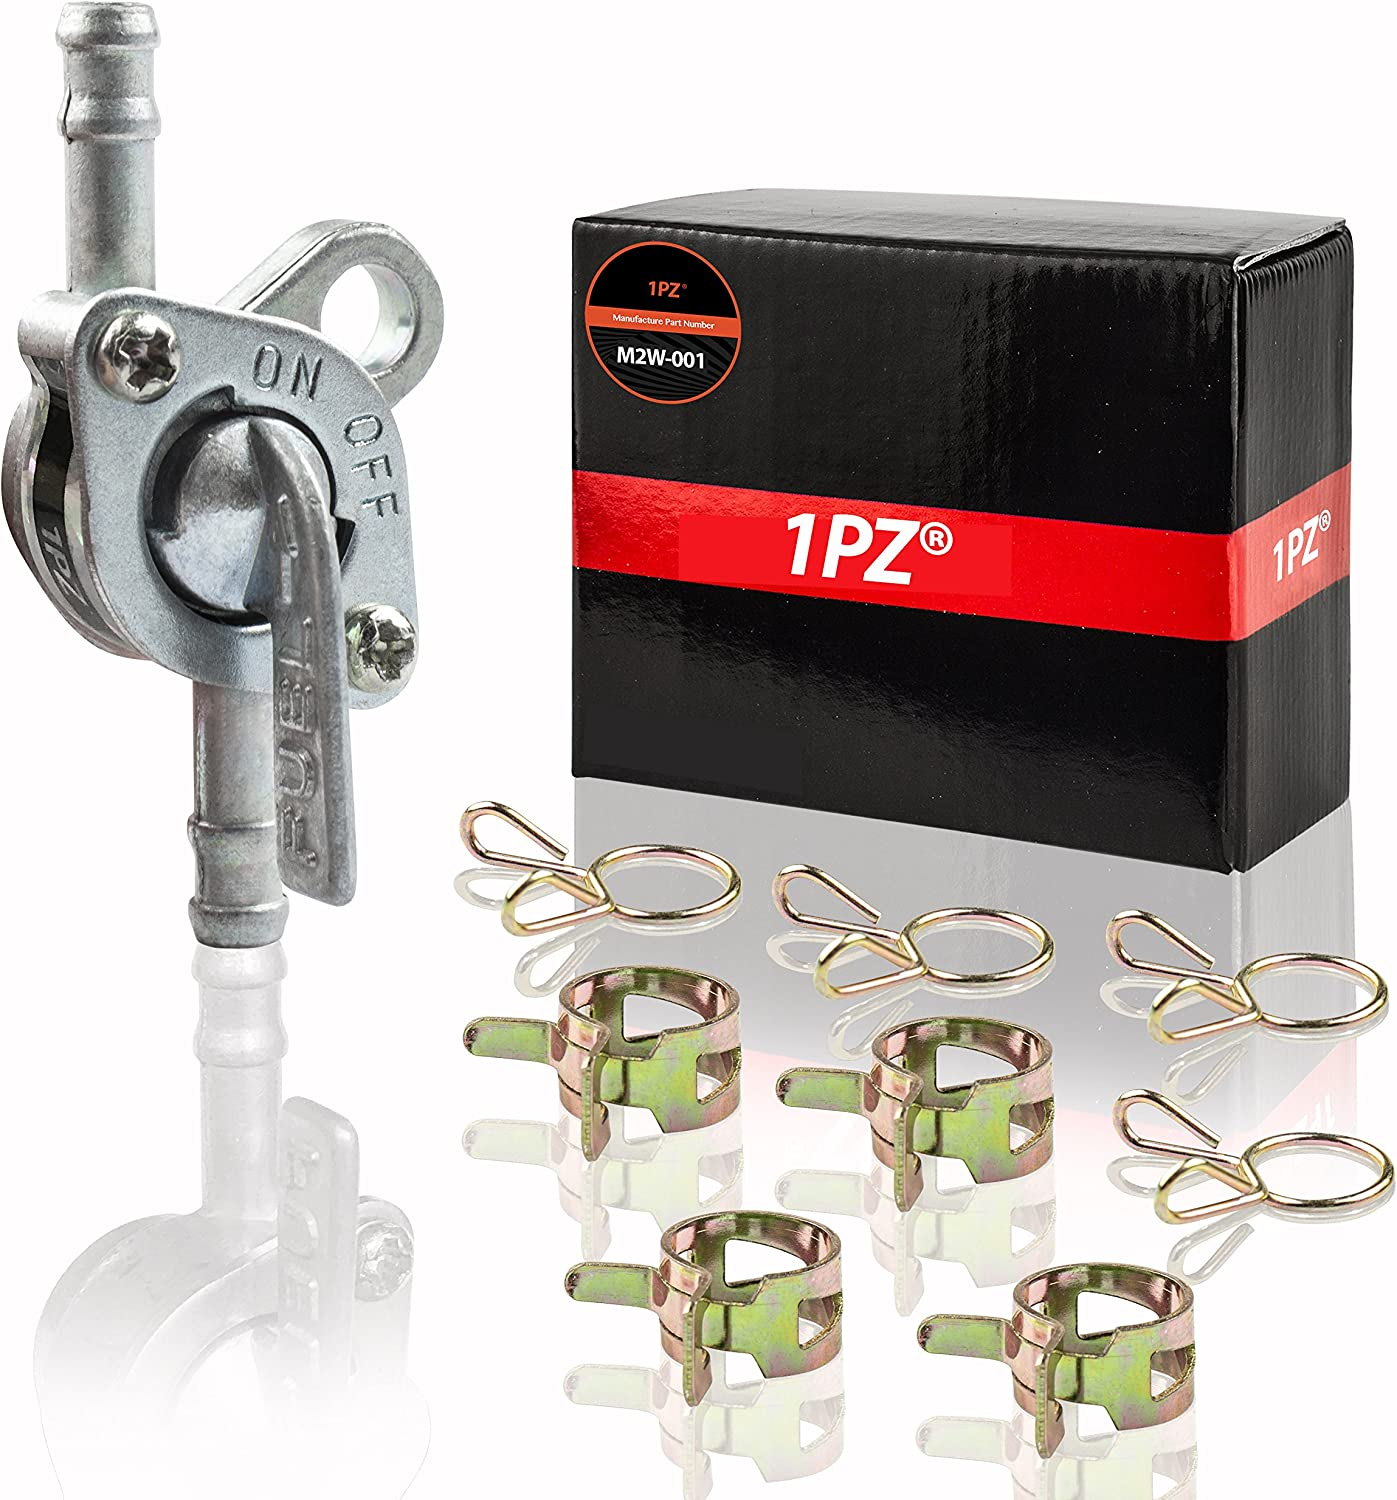 1PZ M2W-001 In-Line Gas Fuel Shut Los Angeles Mall Clearance SALE! Limited time! Off fits or 16